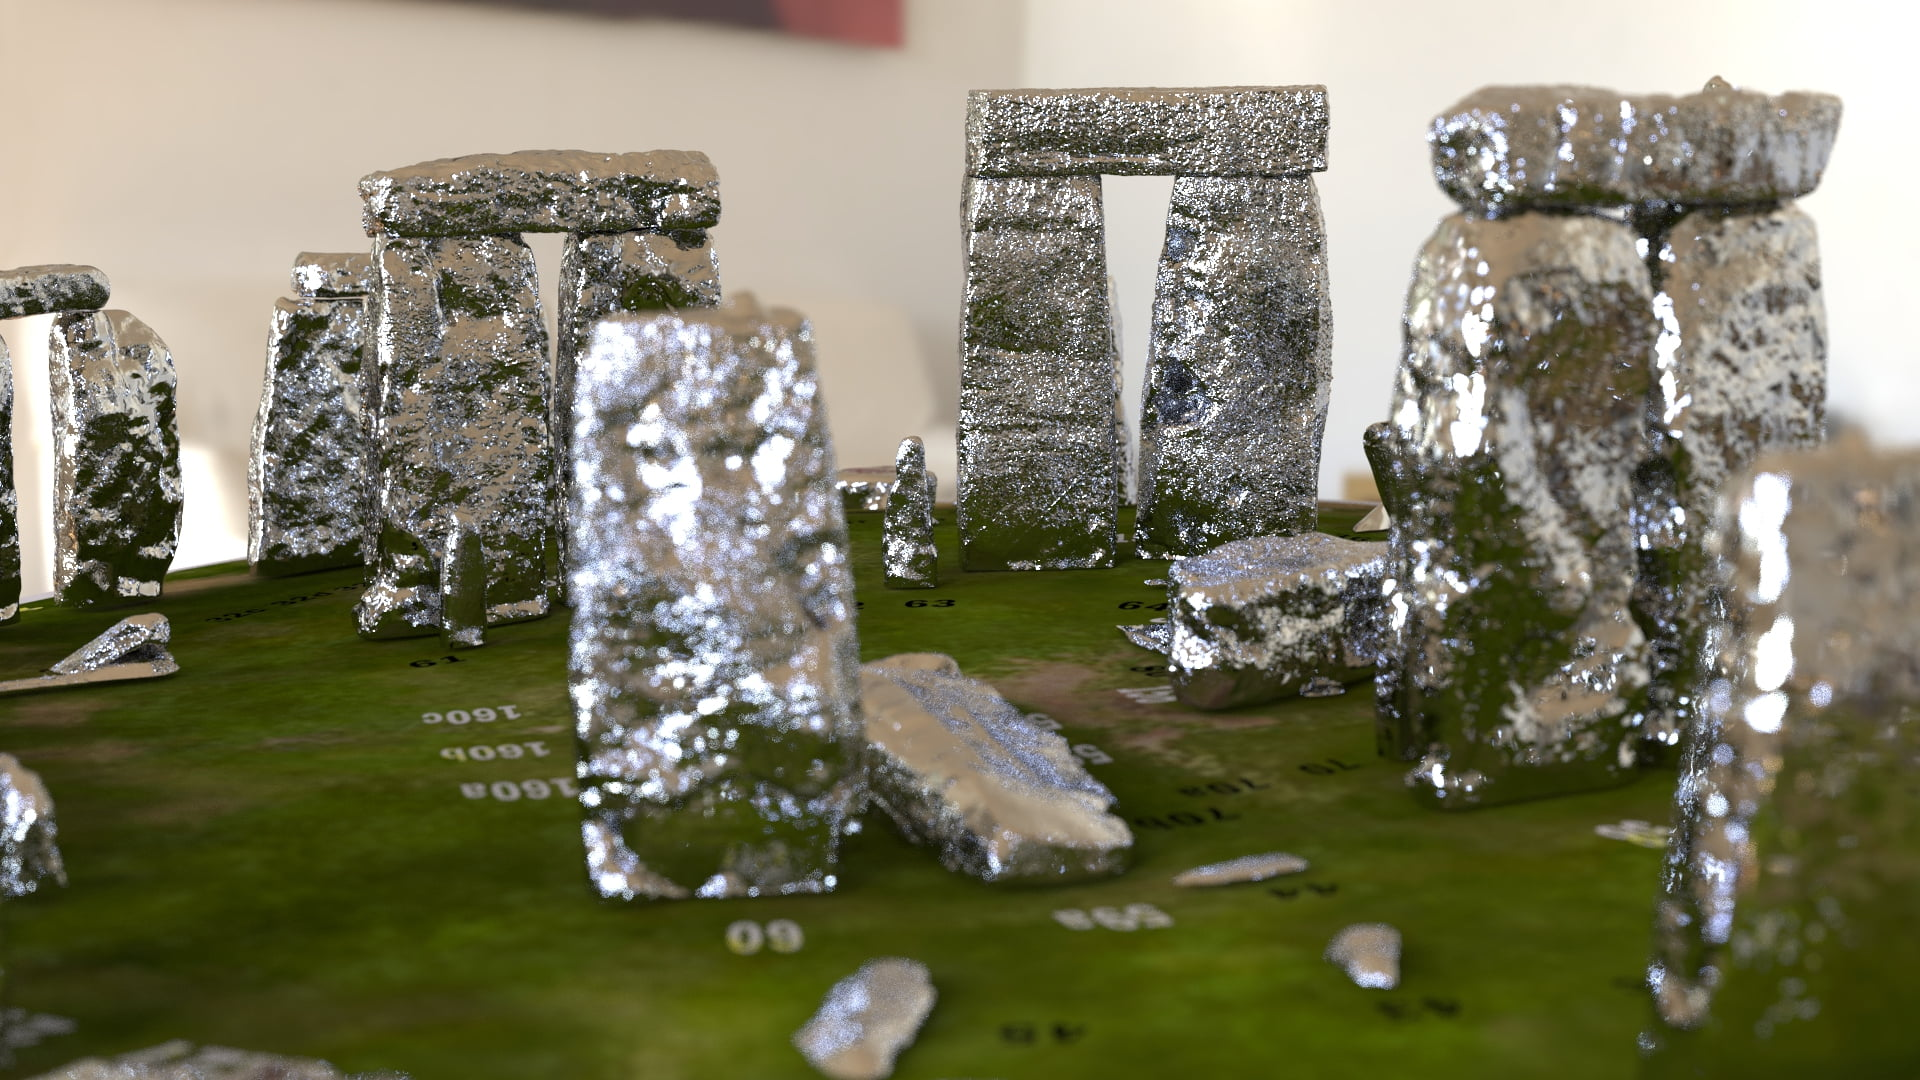 Buy Stonehenge Models: Silver Stonehenge replica models at 200th scale 002 2  - 200th scale pick n mix -